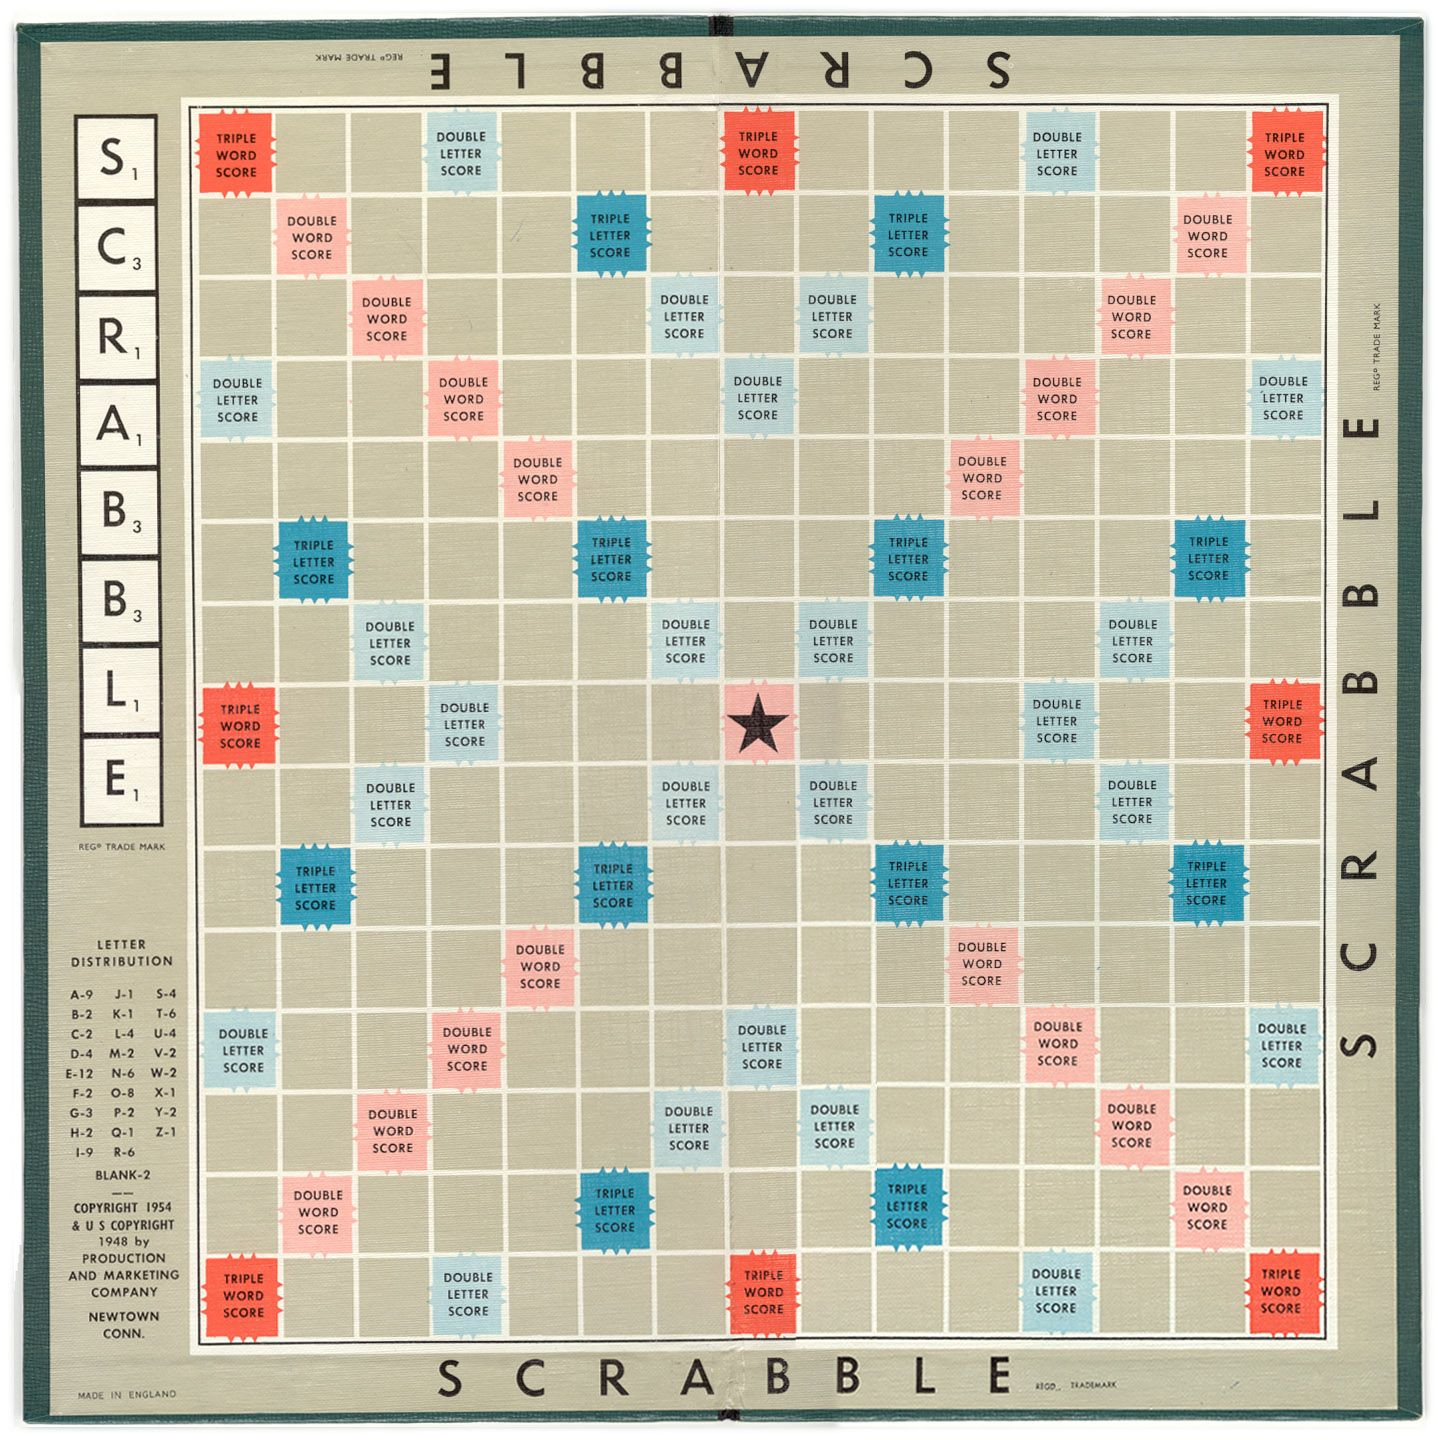 image about Printable Scrabble Board named scrabble2 Once I was a little one/youthful Scrabble board, Community